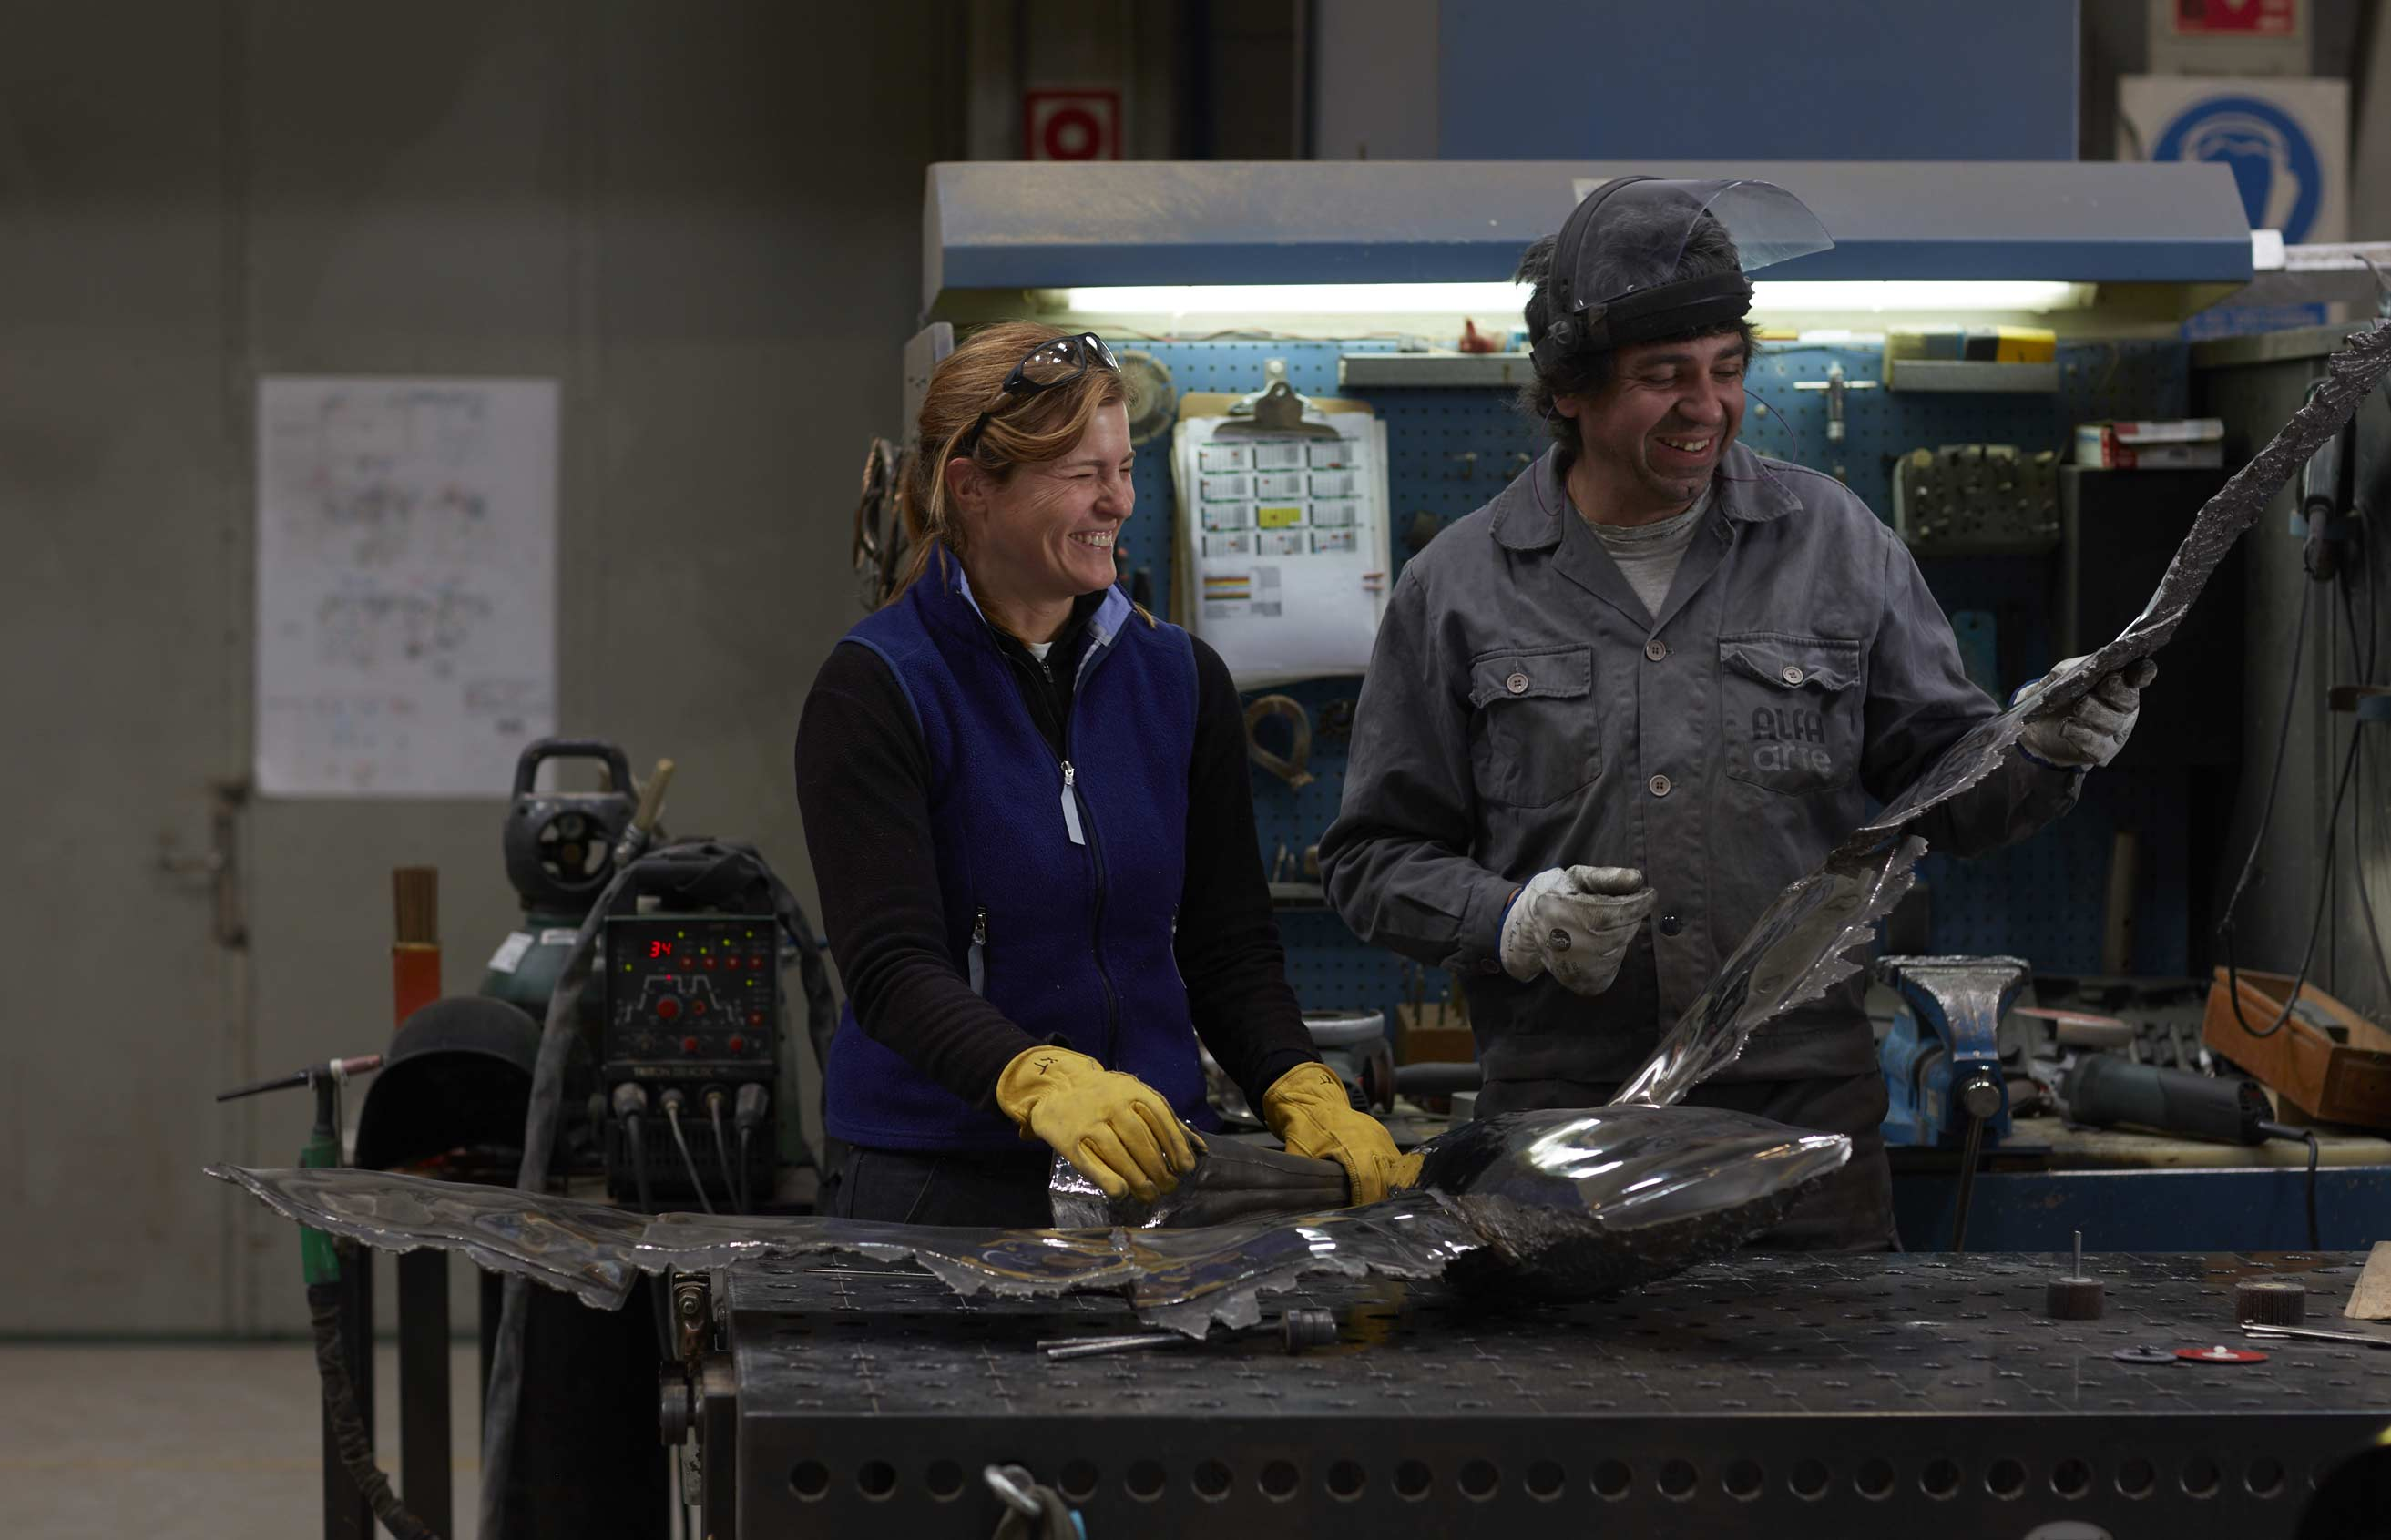 Katherine Taylor working in Alfa Arte. Sculptural project: #PelicansFlyTogether, in stainless steel, installed at St. Paul